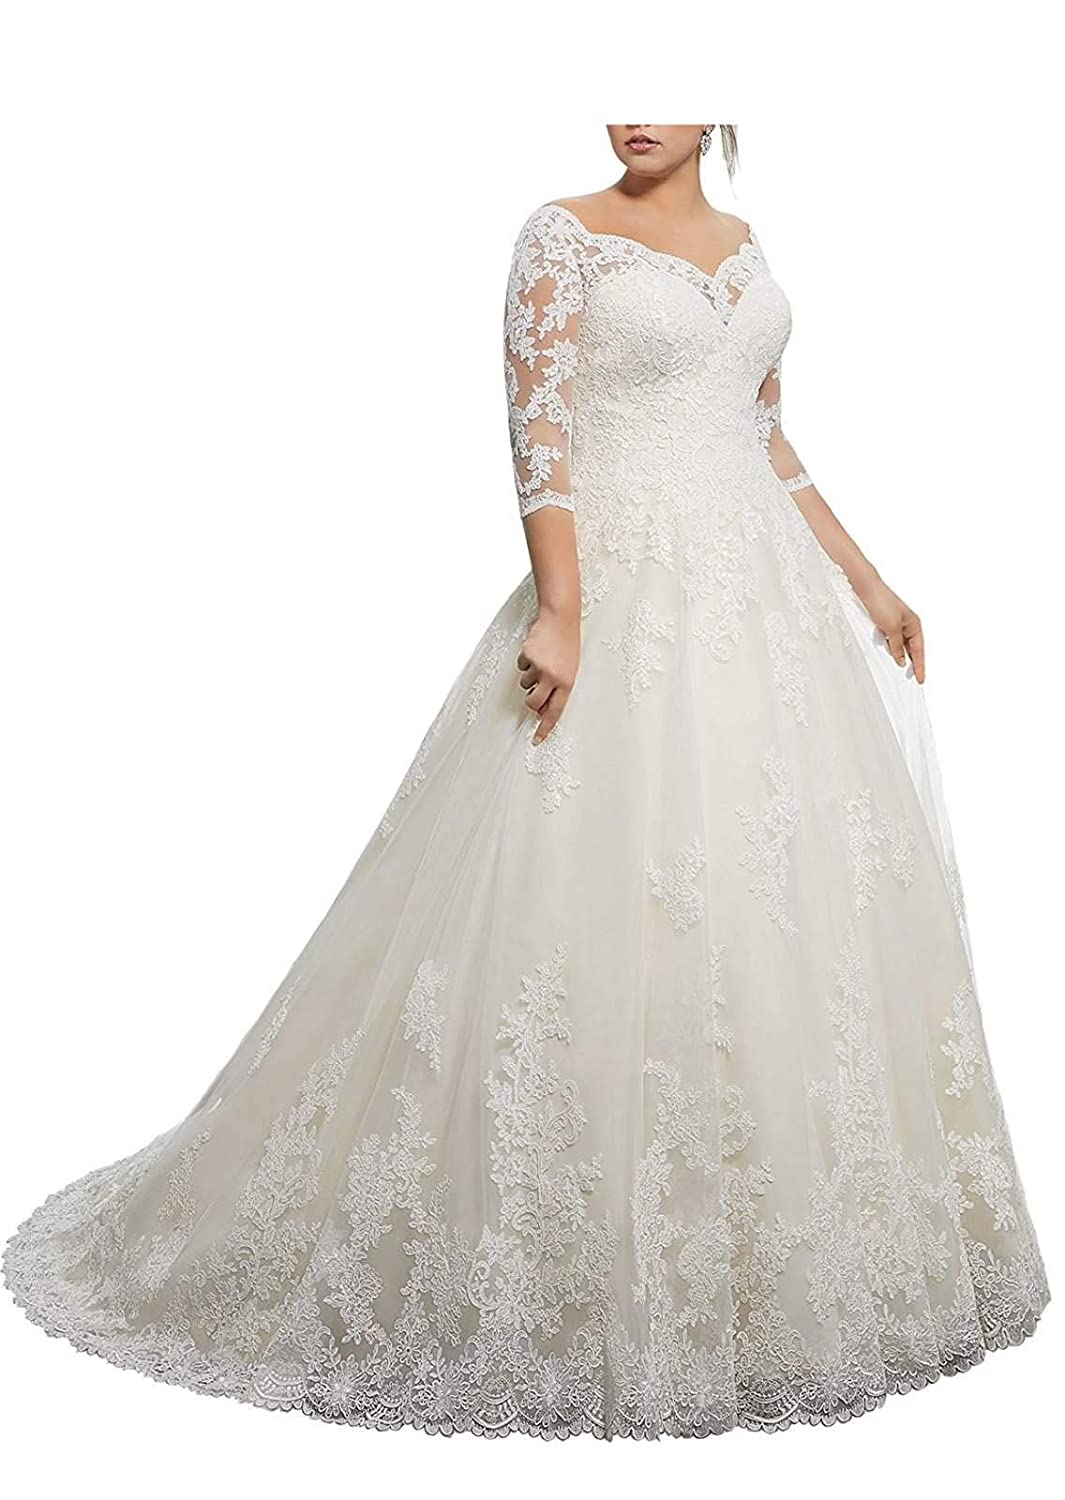 Womens Lace Wedding Dresses for Bride with 3//4 Sleeves Plus Size Bridal Gown Jerald Norton Ltd